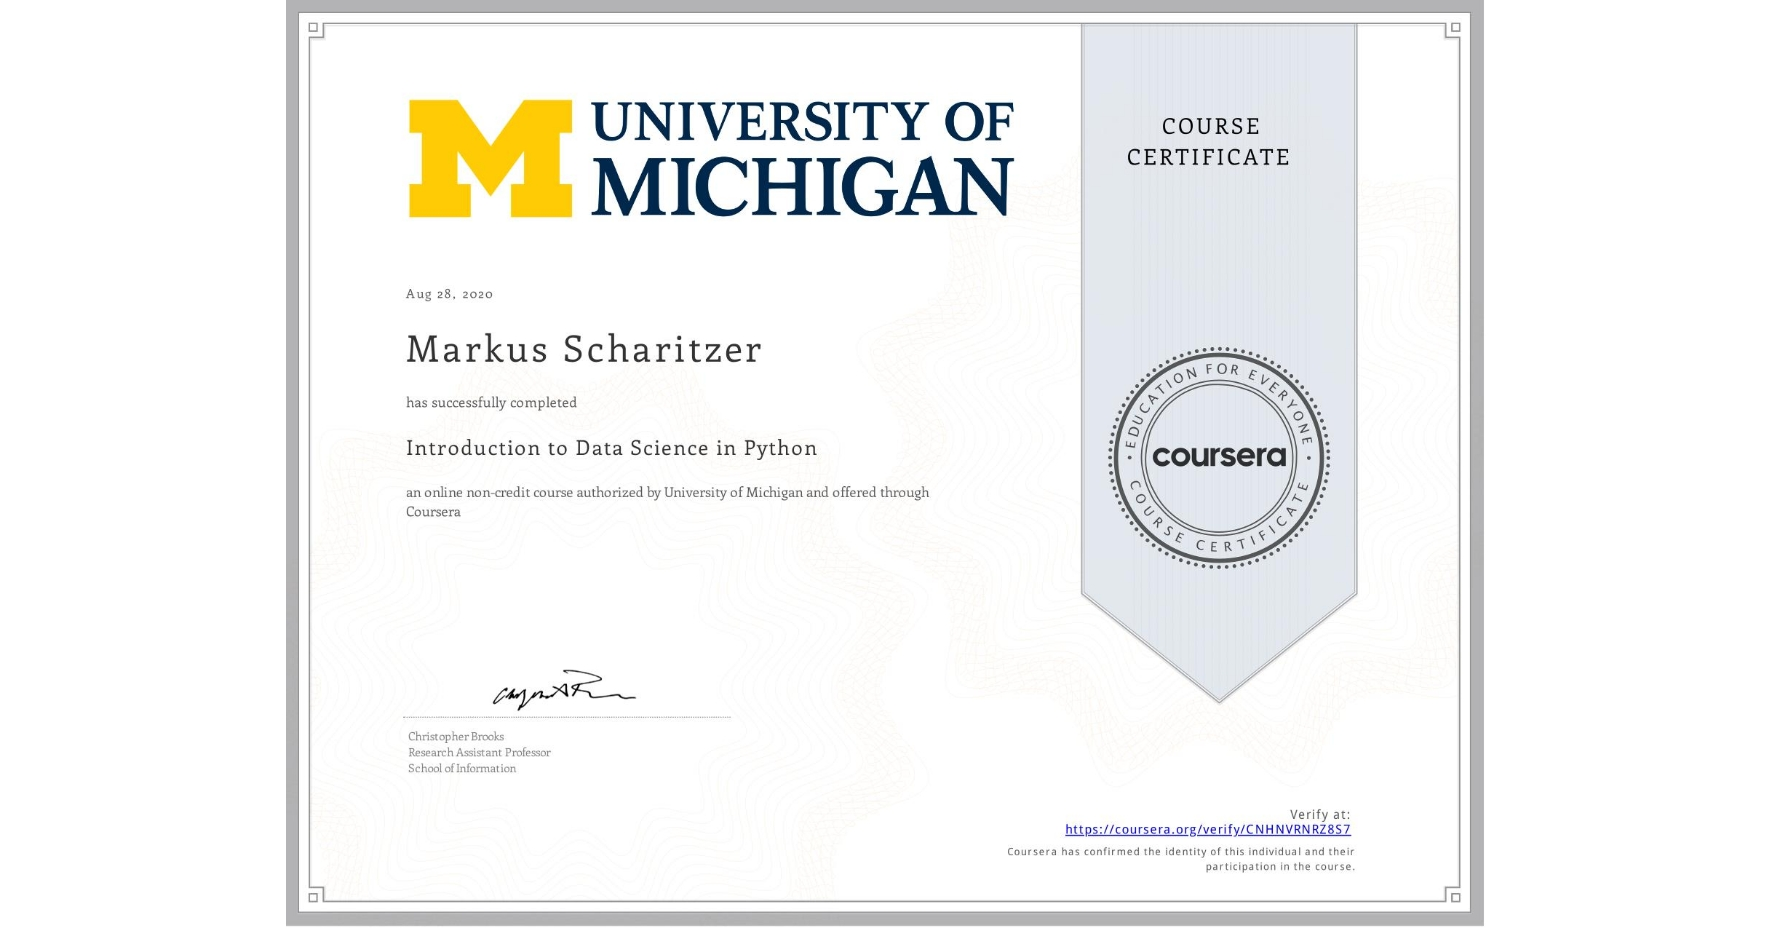 View certificate for Markus Scharitzer, Introduction to Data Science in Python, an online non-credit course authorized by University of Michigan and offered through Coursera